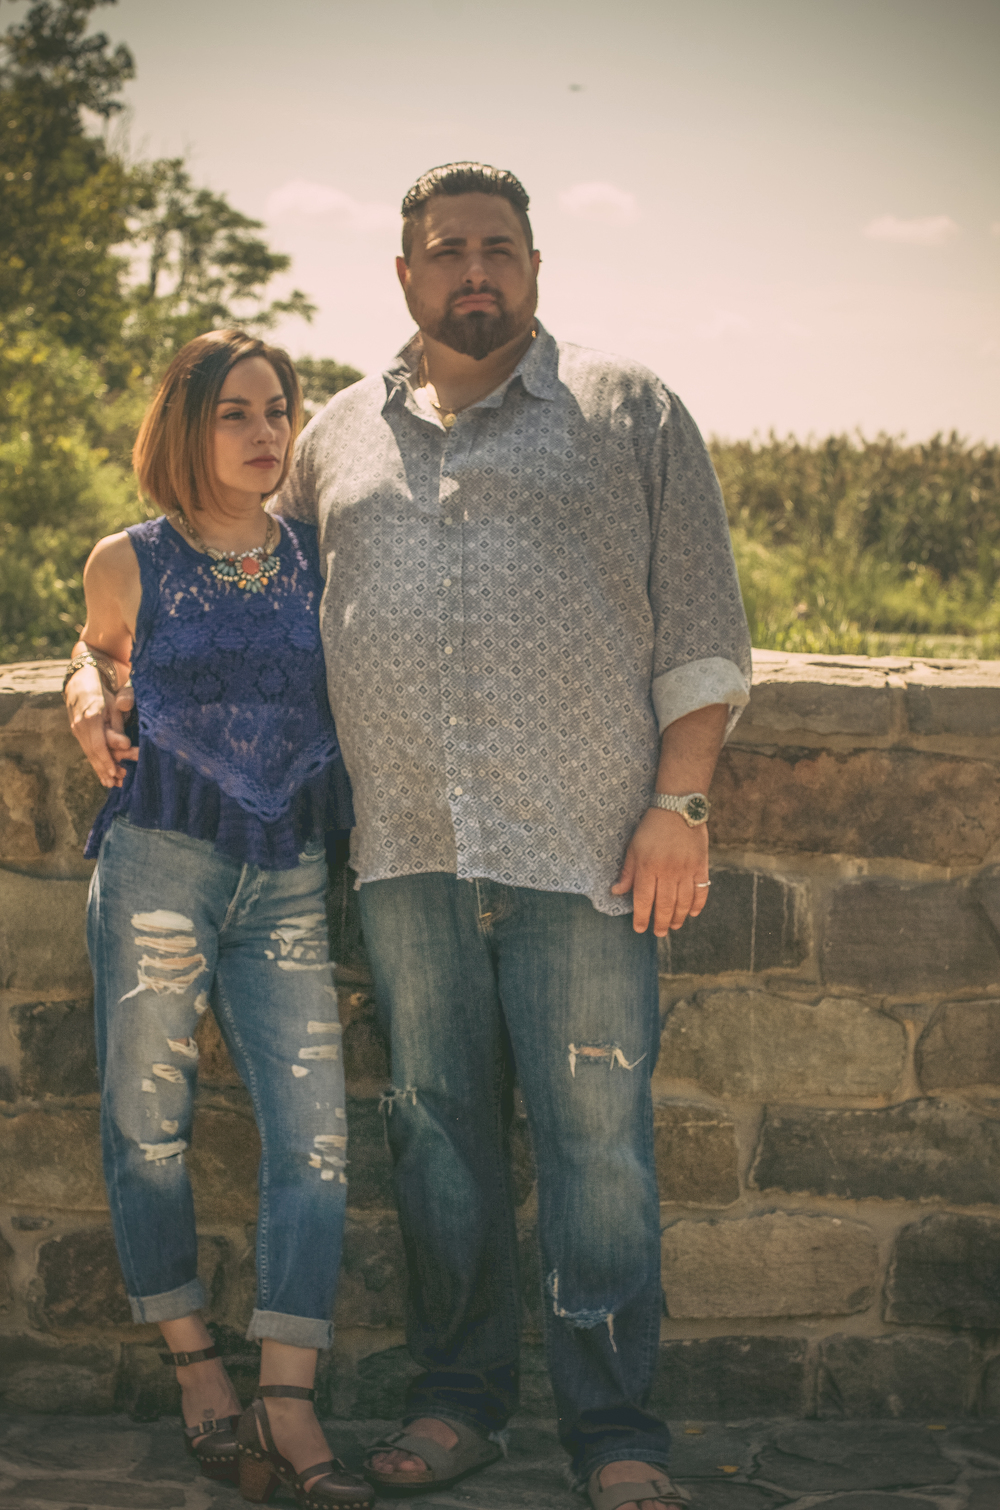 Sara_Anthony_EngagementShoot_Sept2014-32.jpg